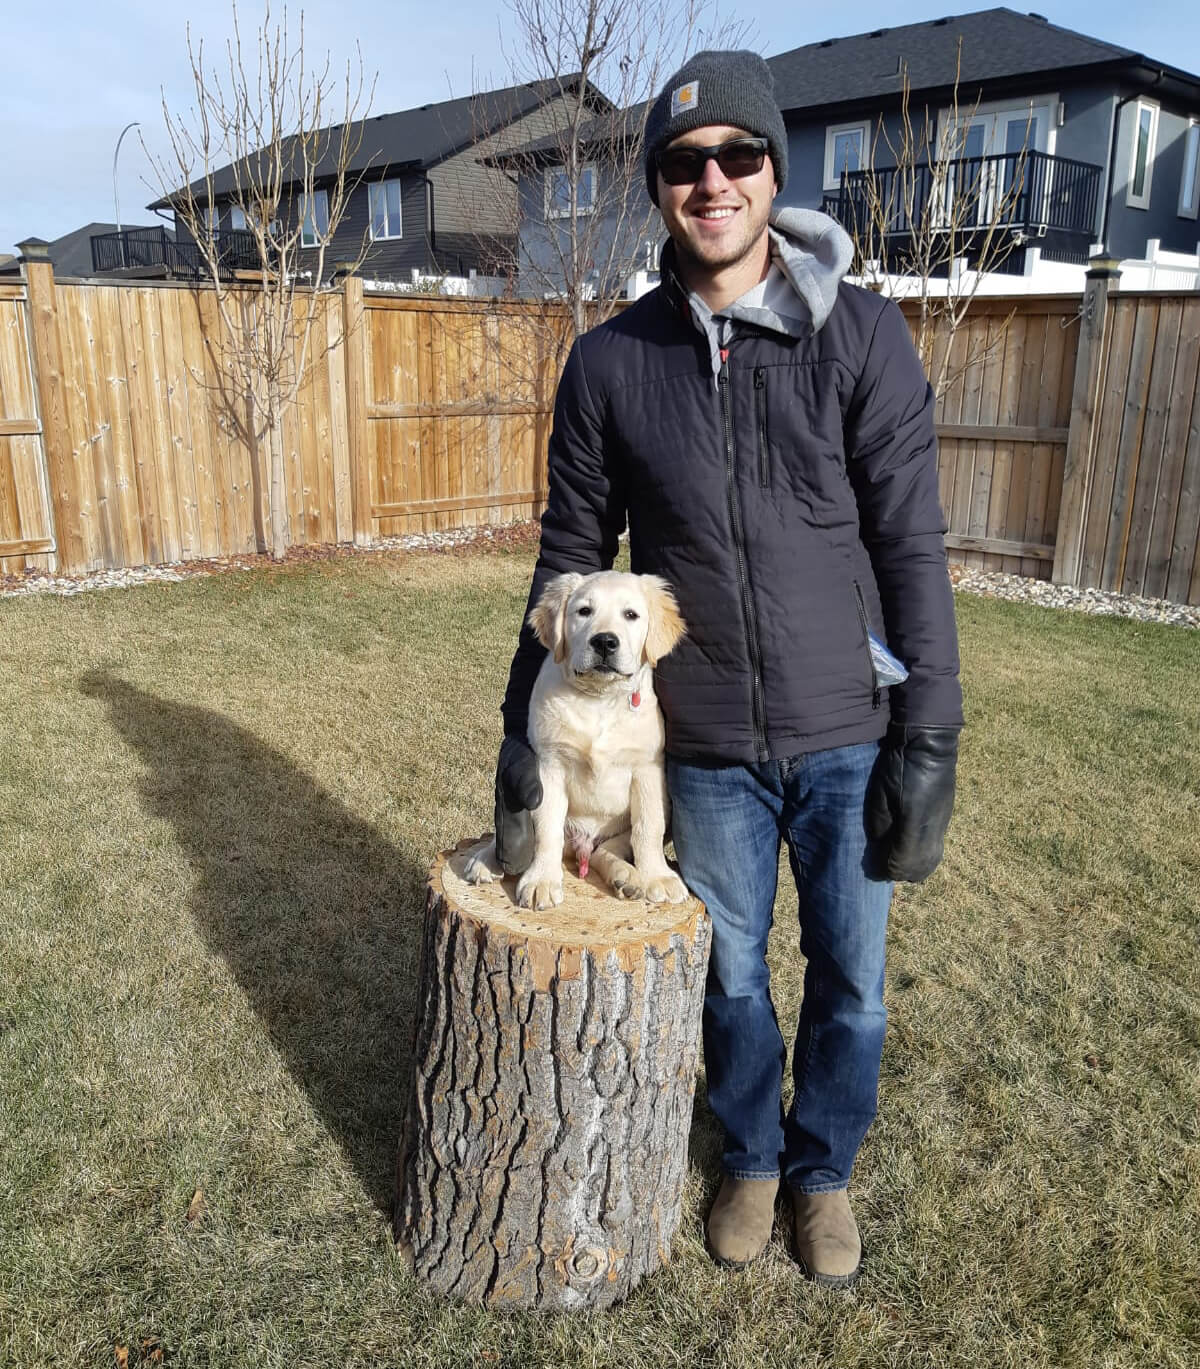 Mat Vercaigne with his puppy standing on a log in his backyard